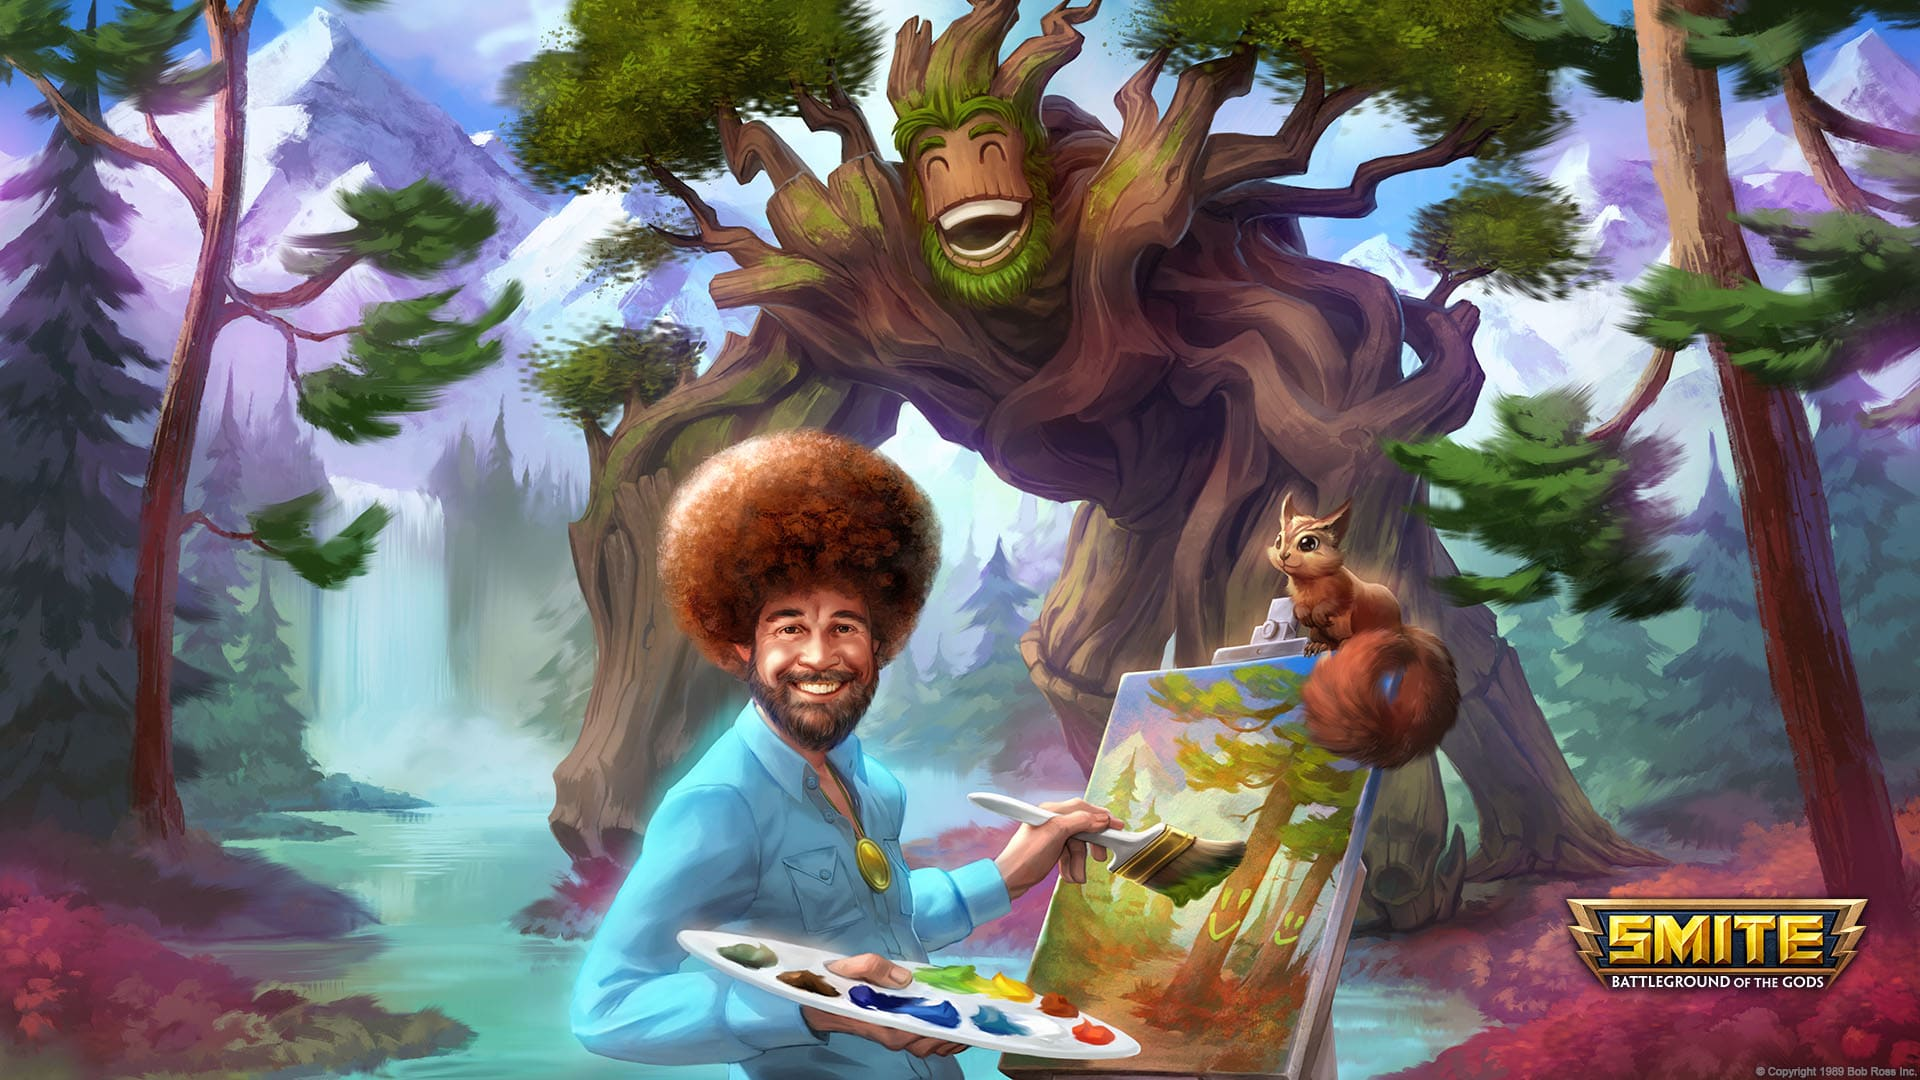 Smite' adds Bob Ross as a paint-throwing playable character